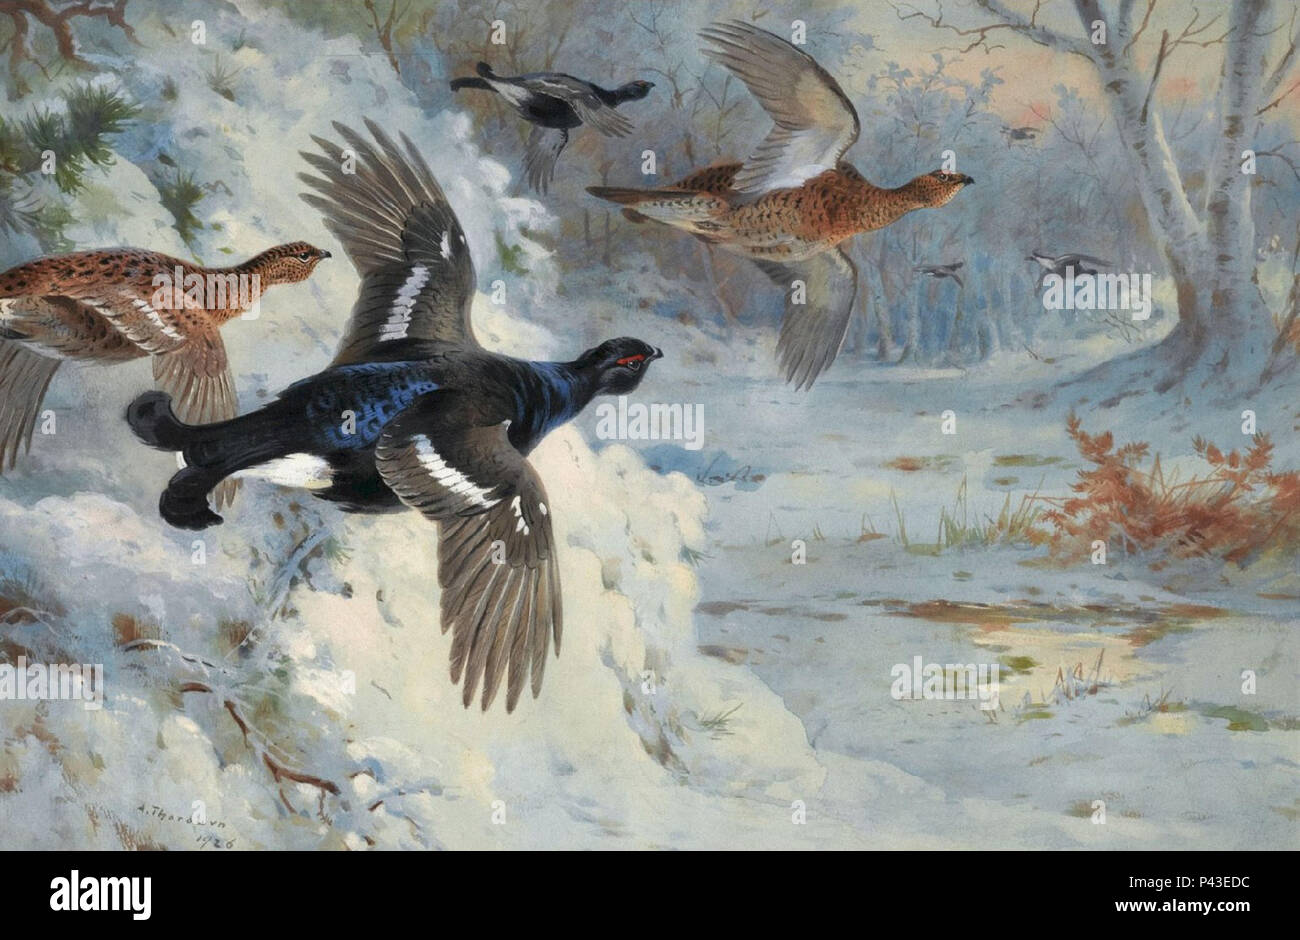 Thorburn  Archibald - Through the Snowy Coverts - Blackgame - Stock Image